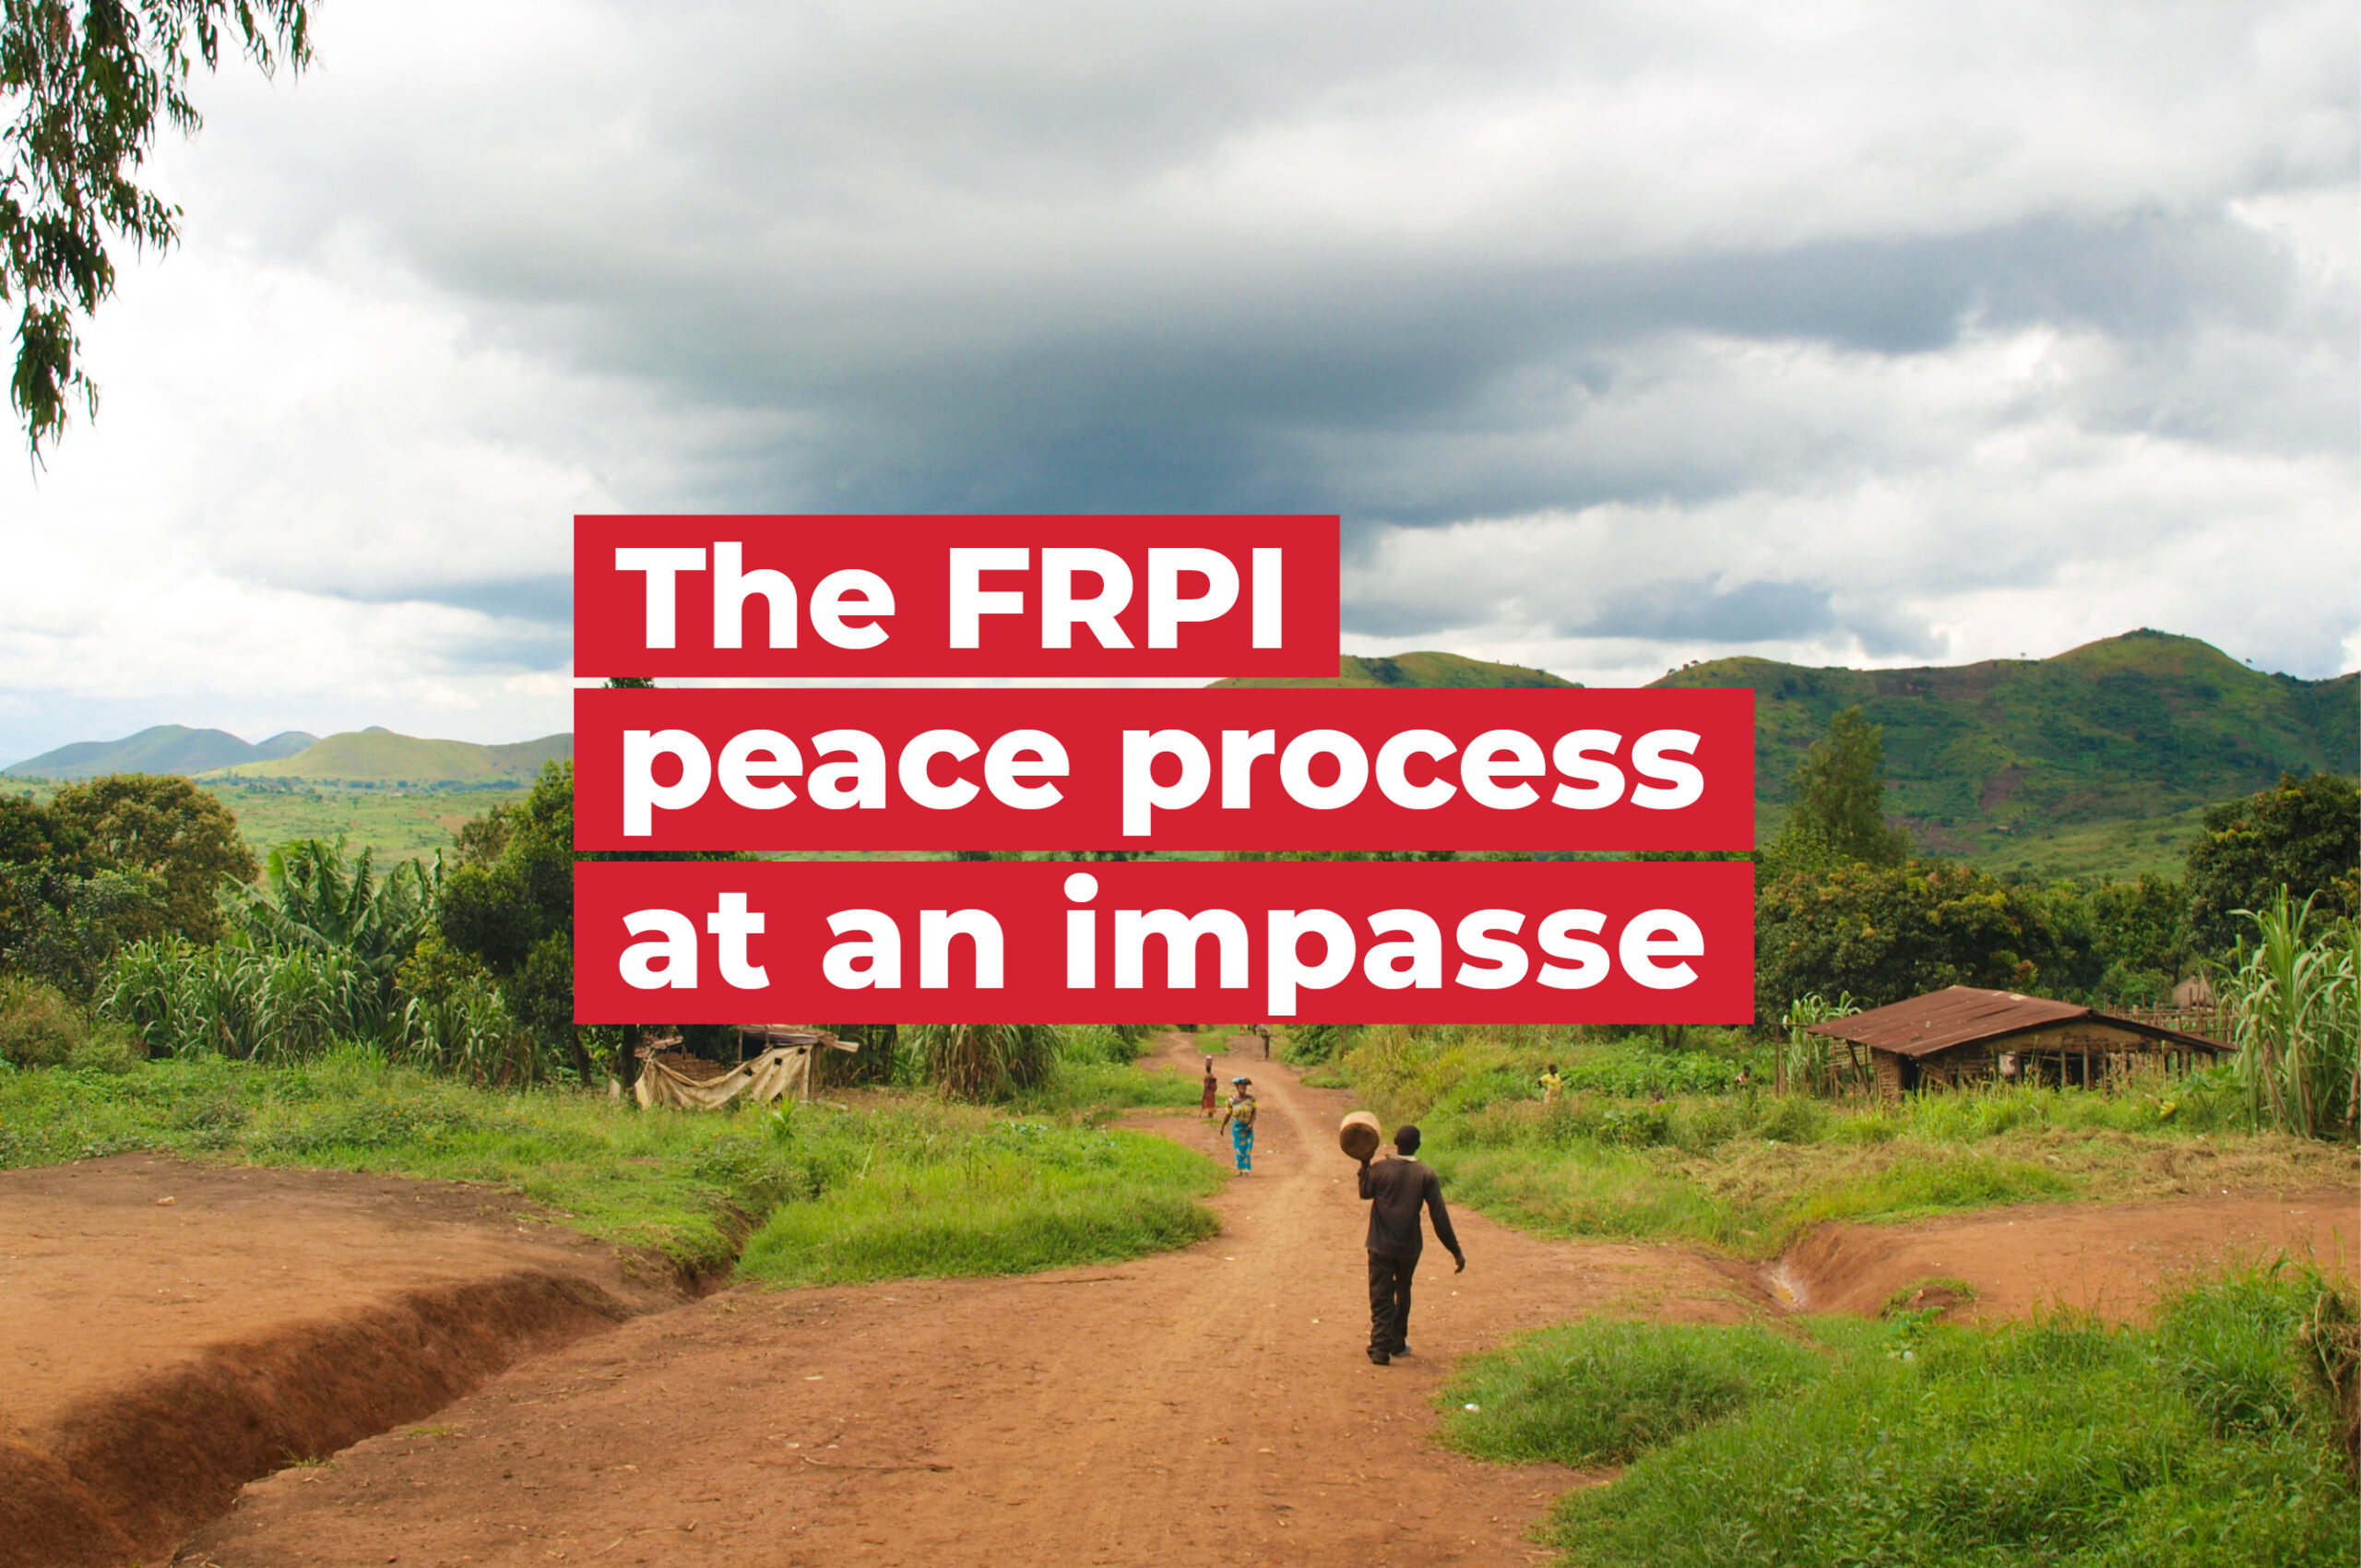 GIC_The FRPI peace process at an impasse_2